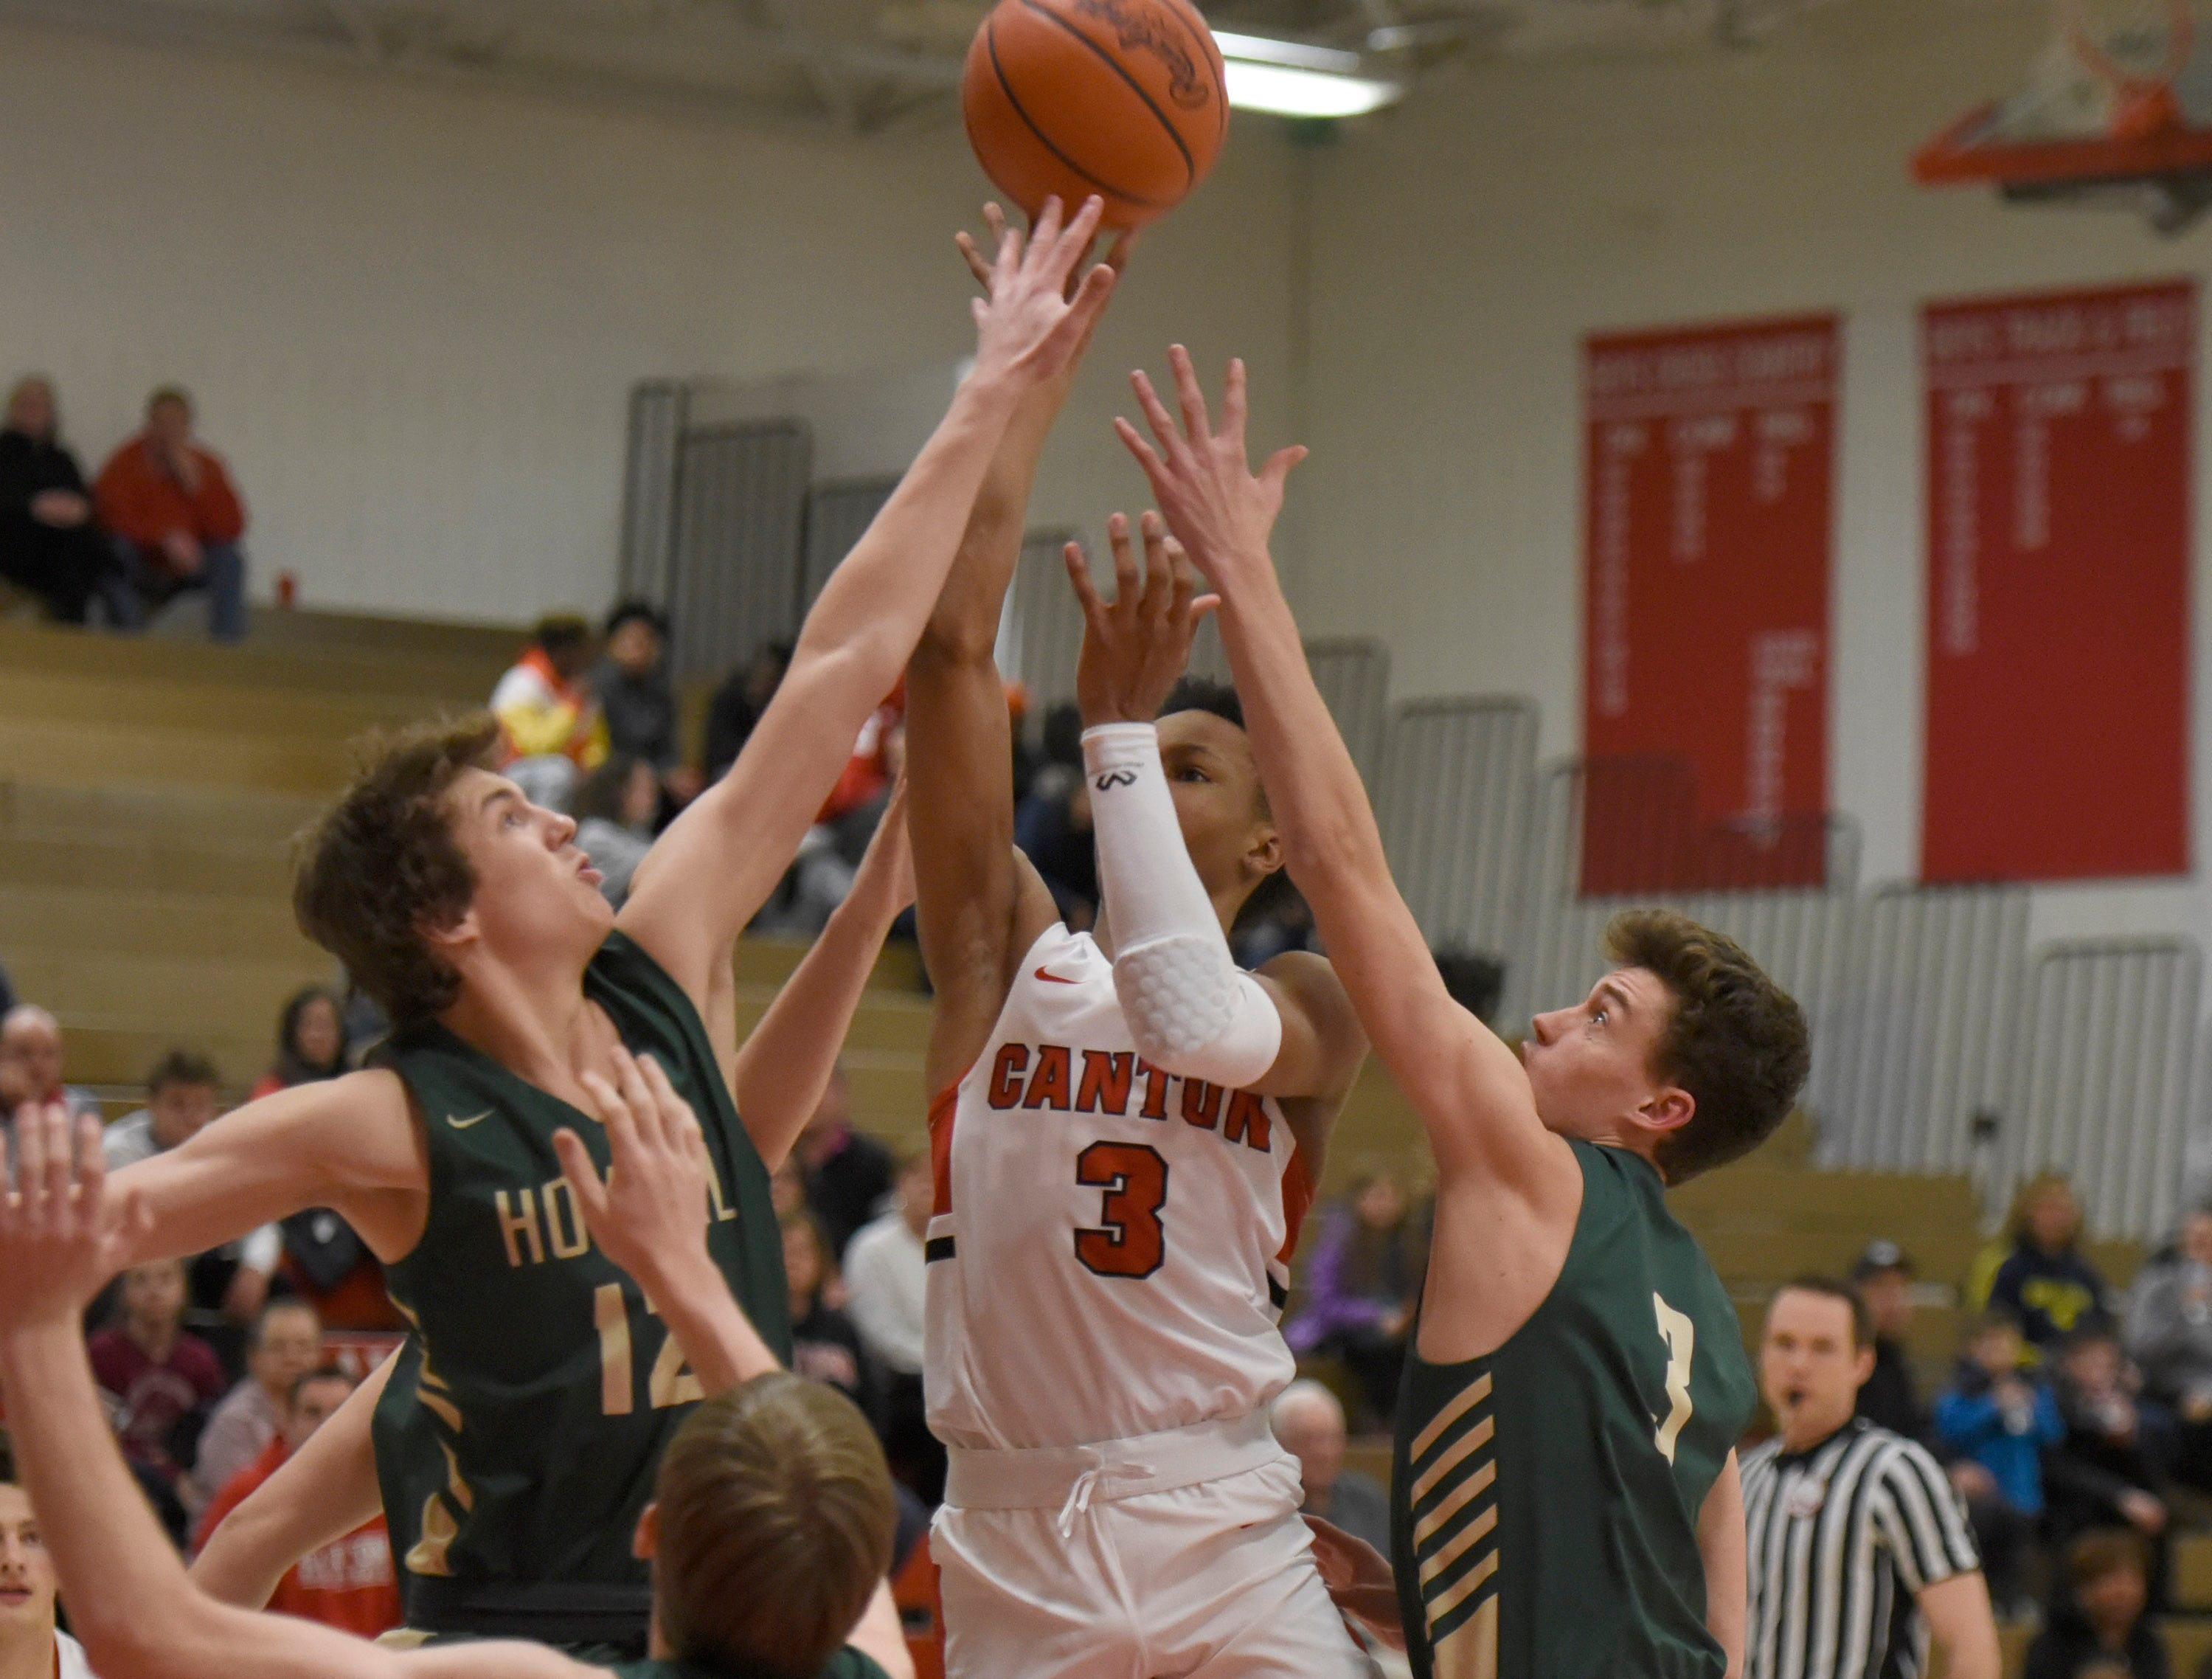 Canton B. Artis White (3) drives against Howell players Tony Honkala (12) and Kip French (3) KLAA match up played at Canton Jan. 15, 2019